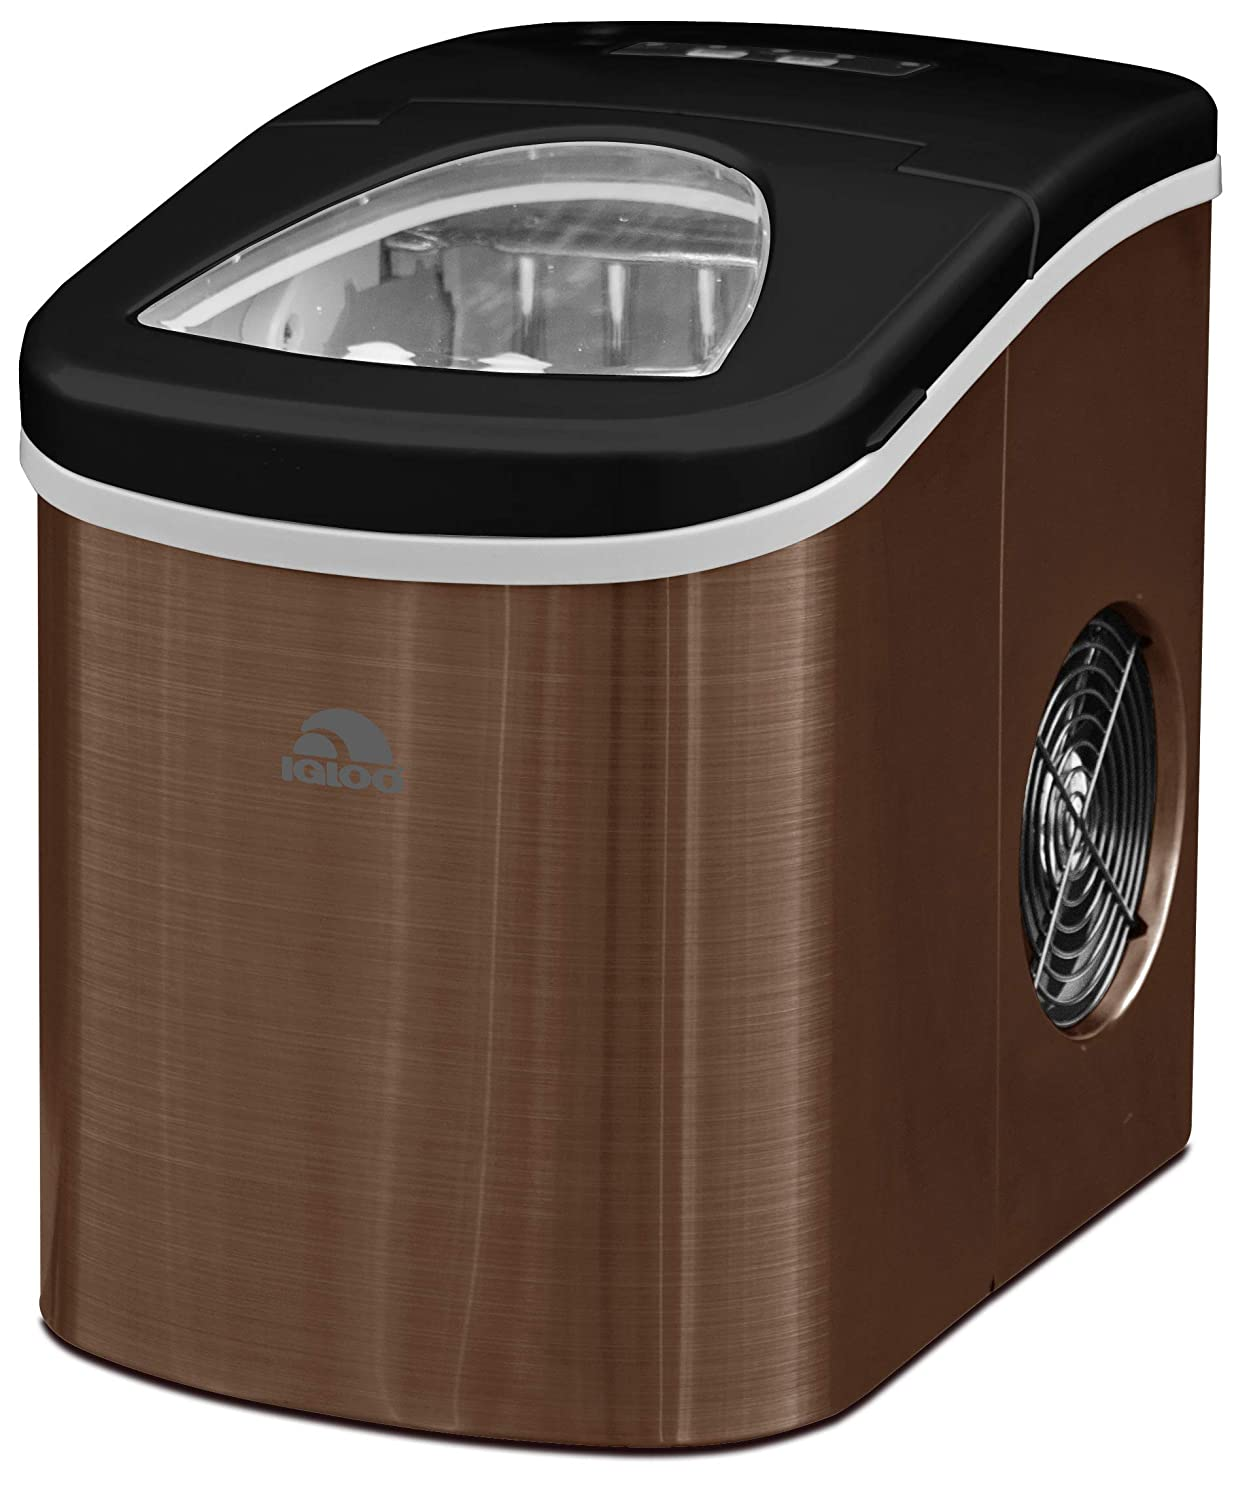 Igloo ICE117-SSCOPPER Compact Ice Maker- Makes 26 lbs. of ice - Copper Stainless Steel